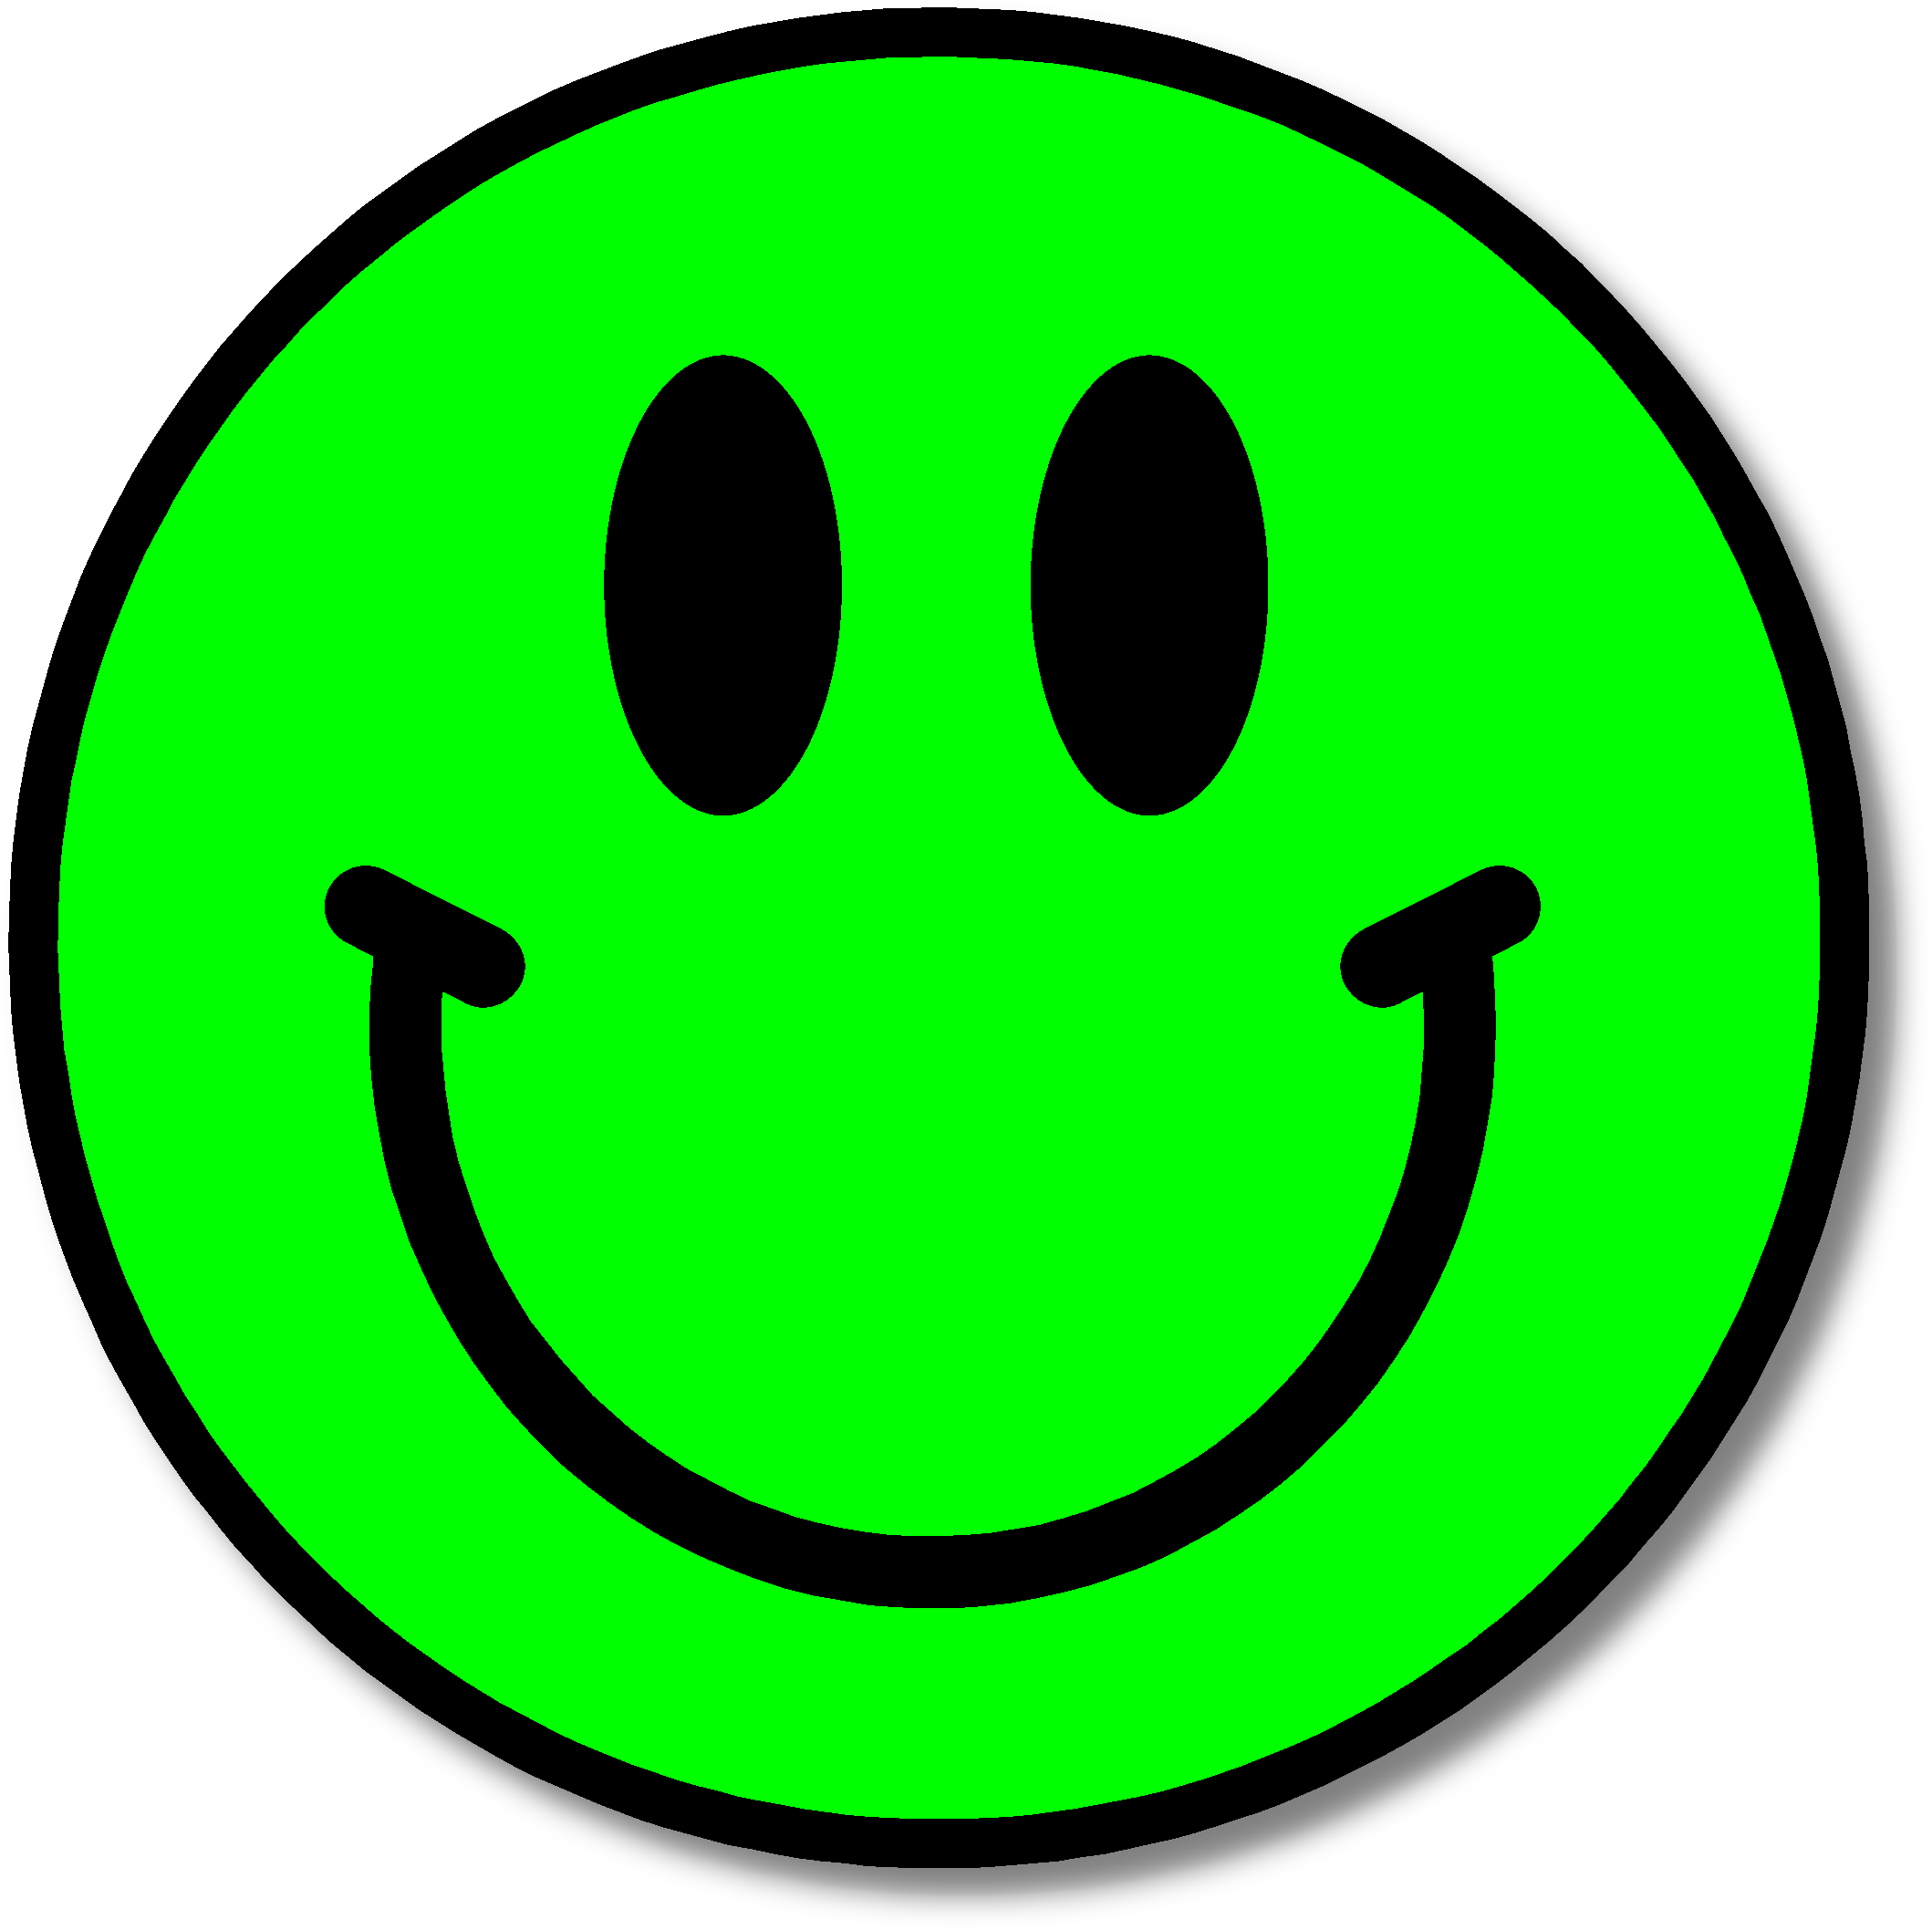 smiley face clipart at getdrawings com free for personal use rh getdrawings com happy face clip art black and white happy face clipart free